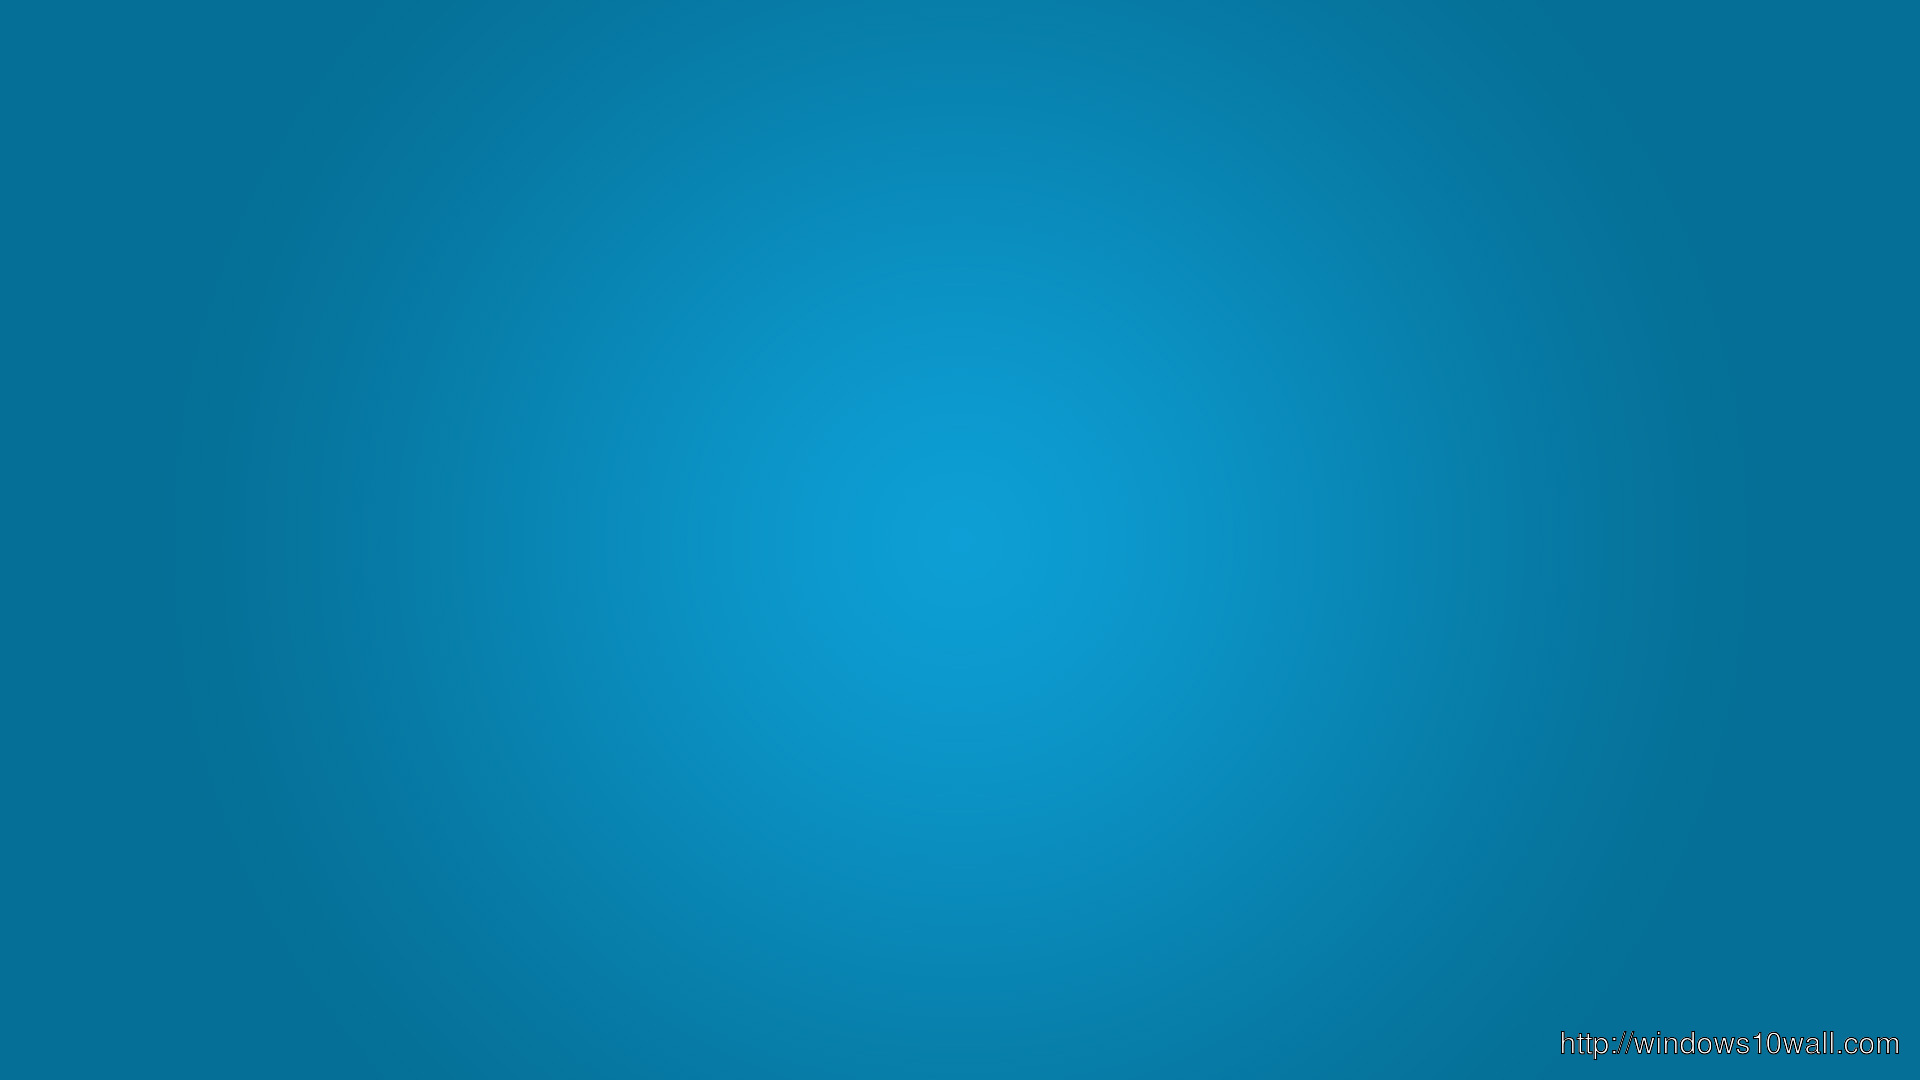 Twitter Background Wallpaper - windows 10 Wallpapers